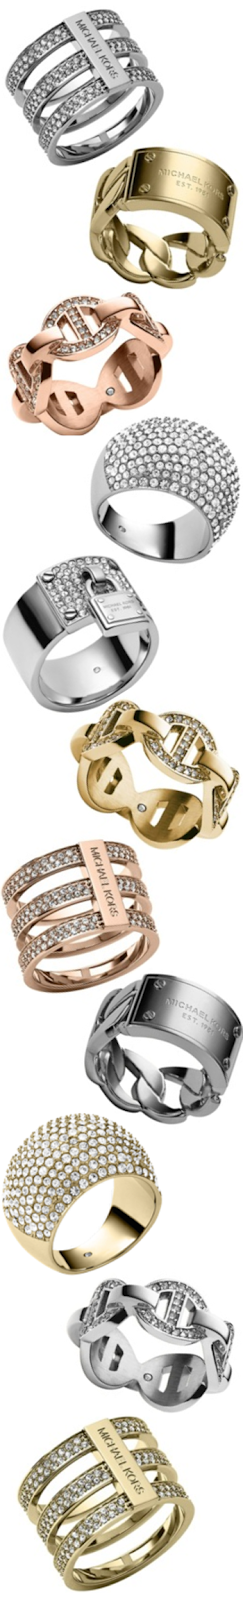 Michael Kors Rings